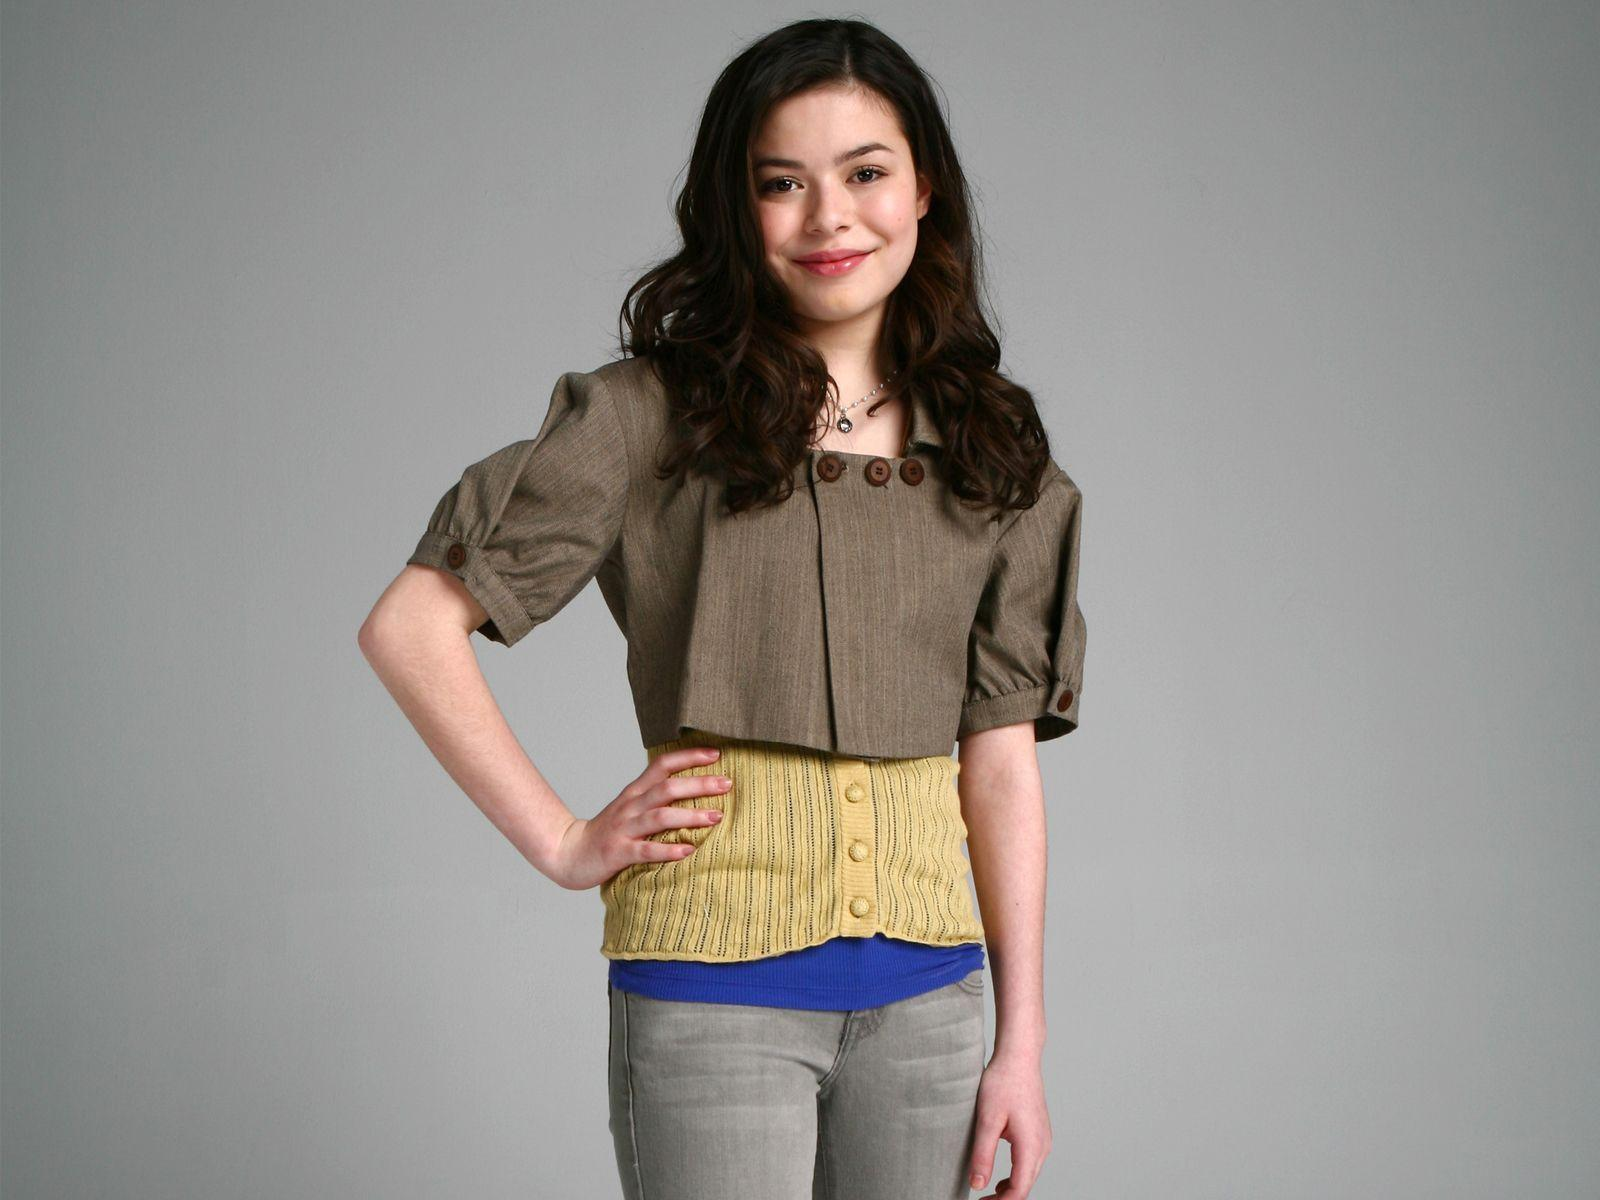 Miranda Cosgrove 13933979 likes 5655 talking about this Follow me at wwwtwittercommirandacosgrove Follow me at wwwinstagramcommirandacosgrove